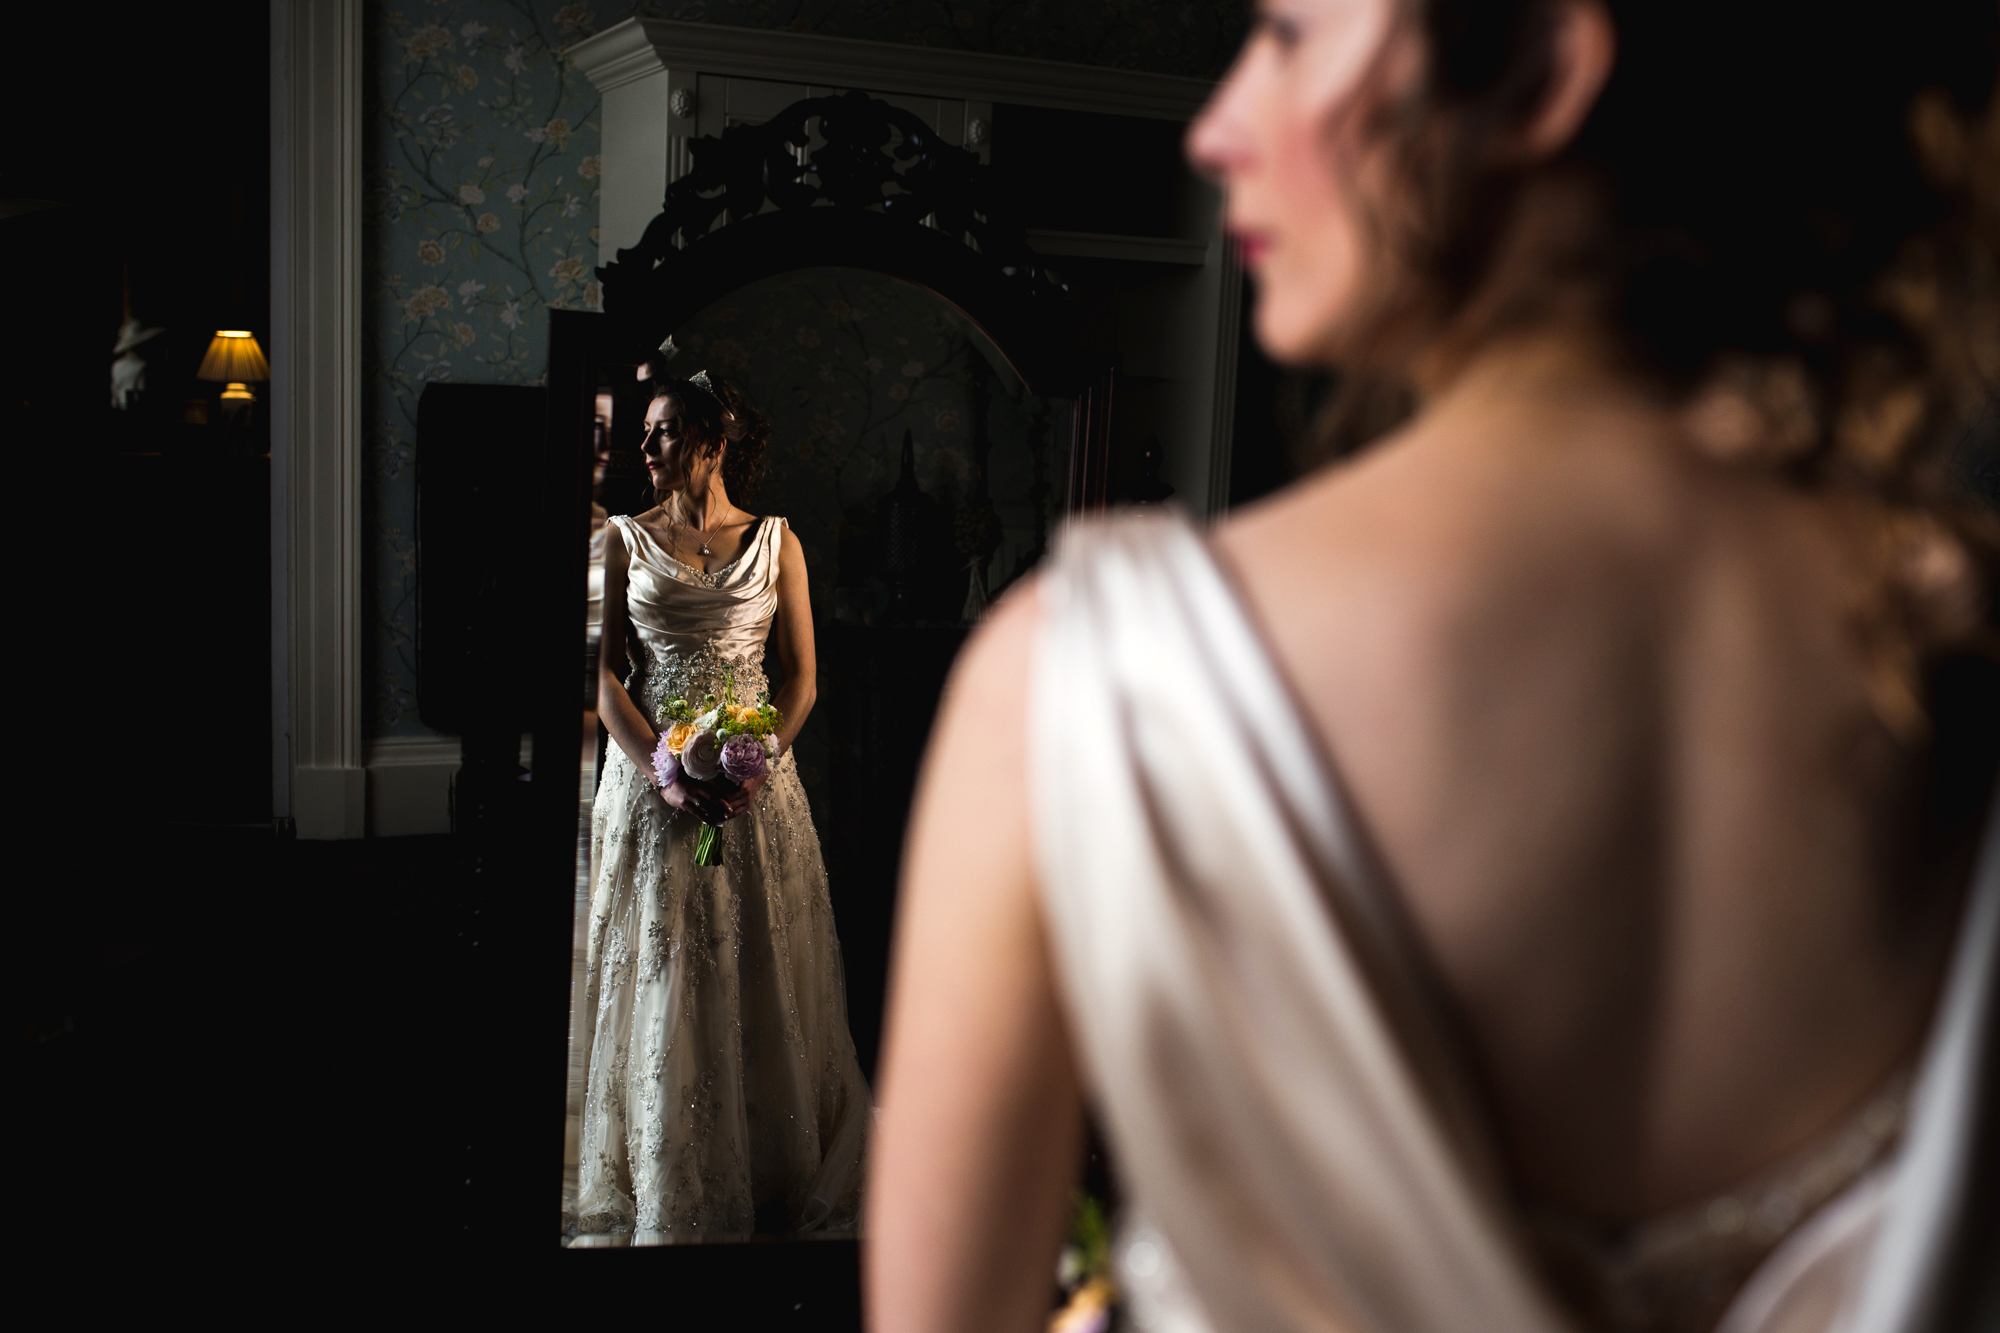 wynyard hall wedding photographer duncan mccall-1013.jpg